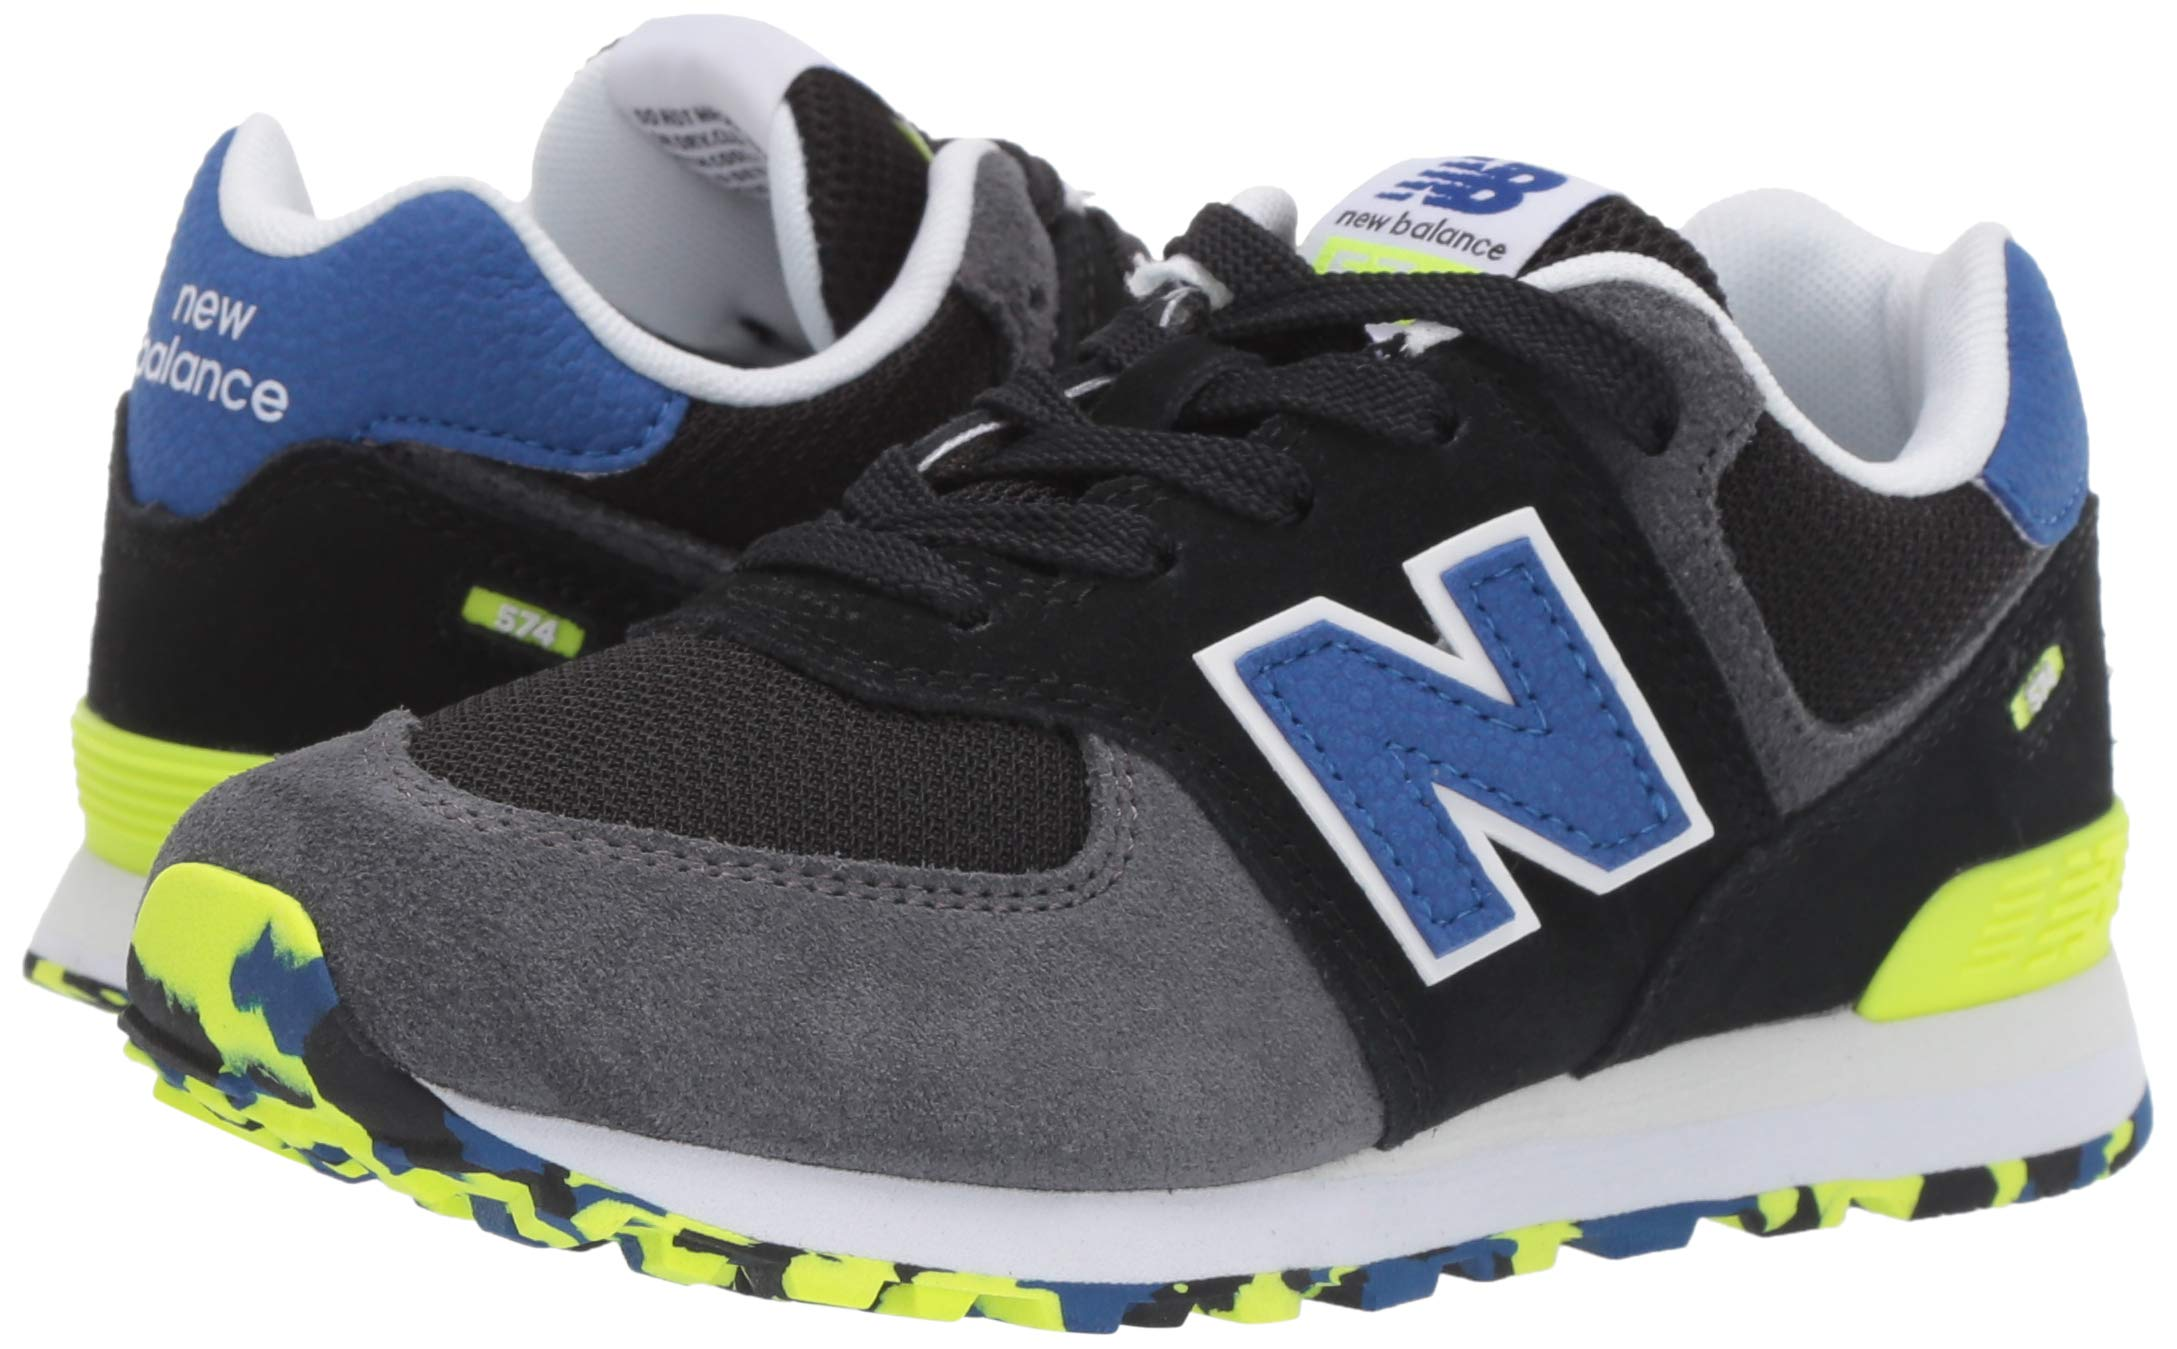 New Balance Boys' Iconic 574 Sneaker Black/Royal Blue 4.5 M US Big Kid by New Balance (Image #6)